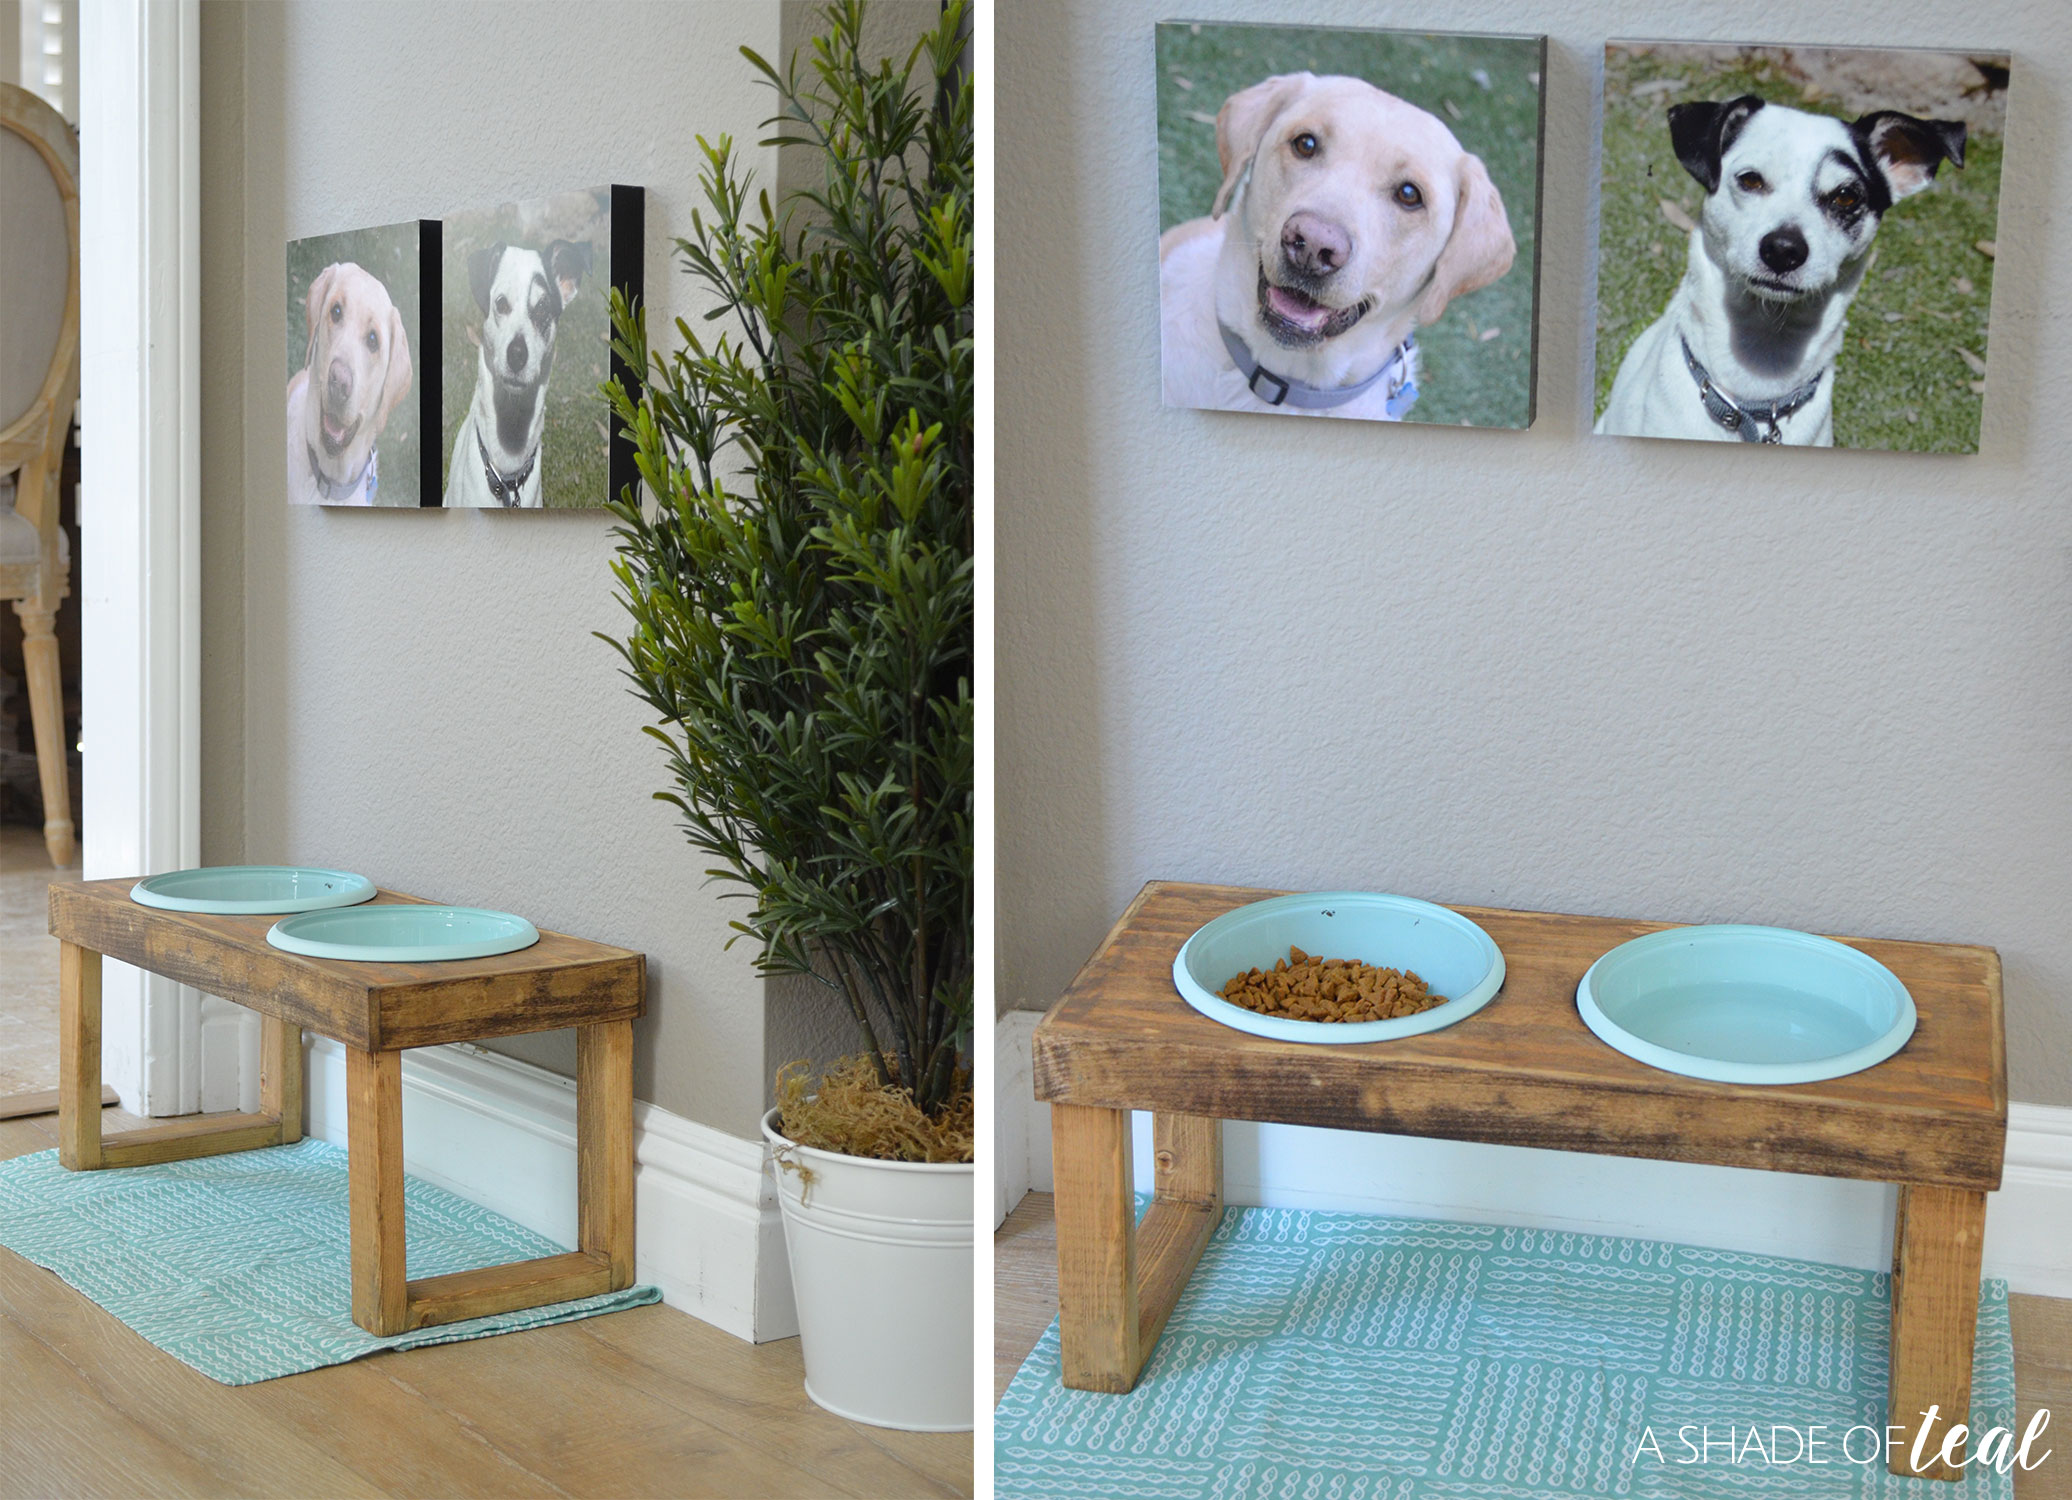 wooden elevated feeder bowl made bowls by bluecharliedesigns single on etsy two raised custom with rustic dog pin